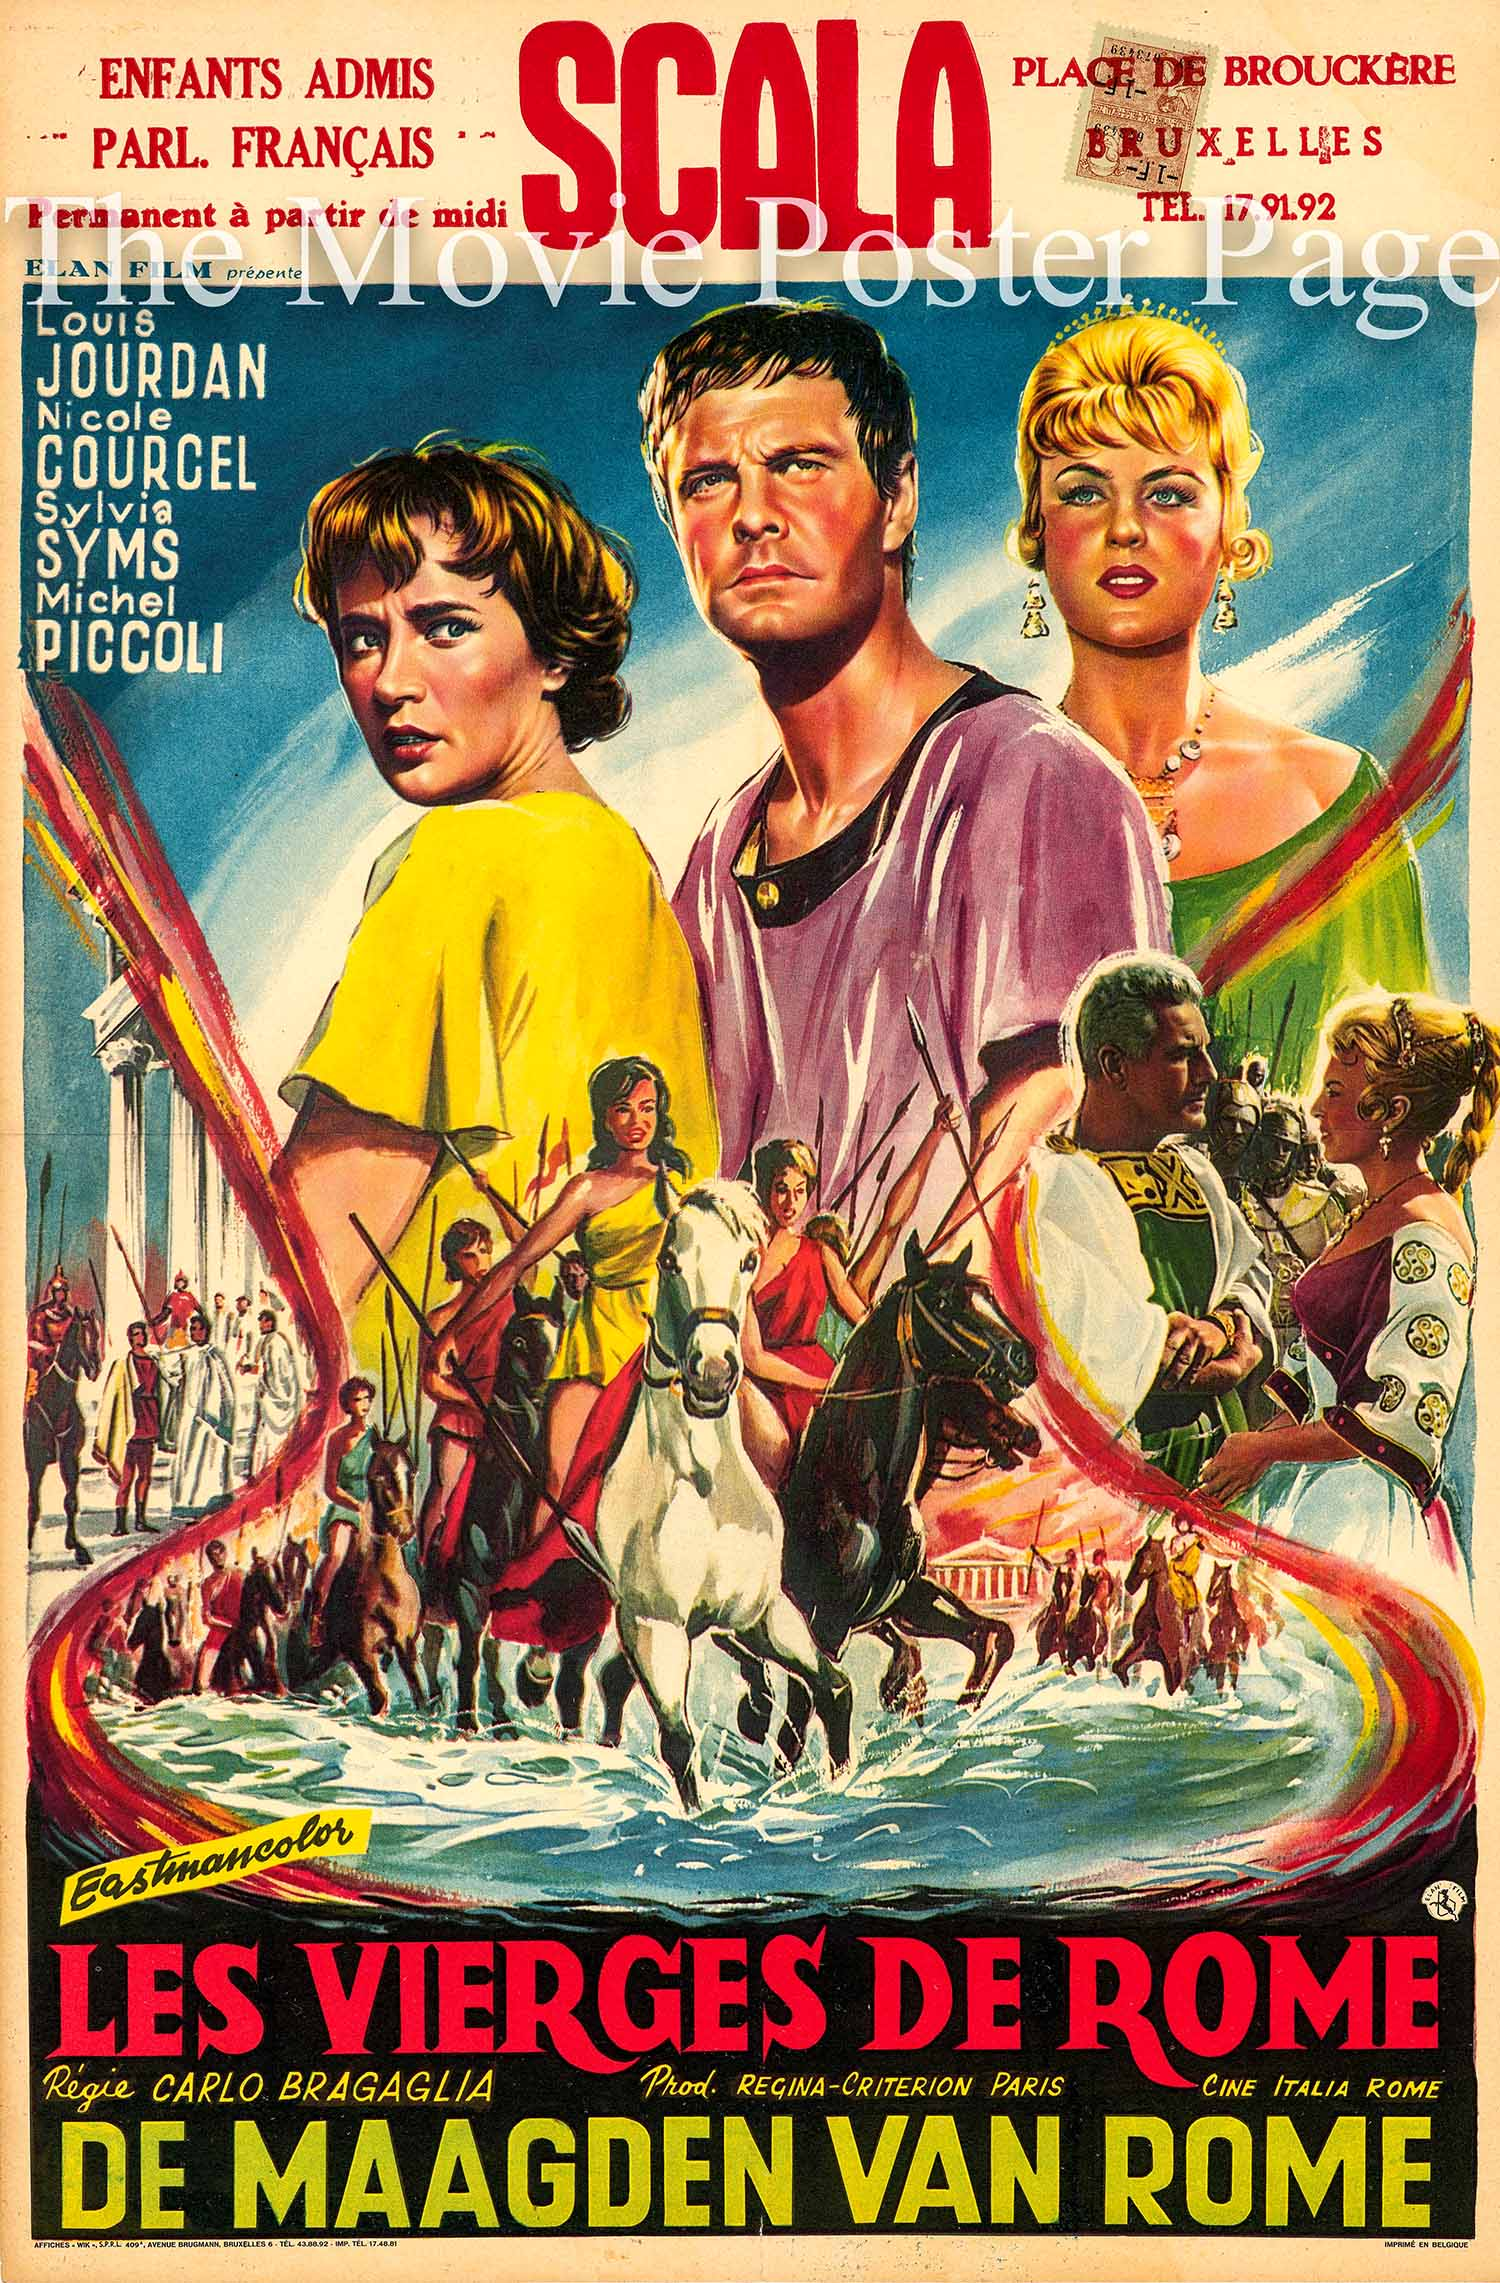 Pictured is a Belgian poster made to promote the 1961 Carlo Ludvico Bragagia and Vittorio Cottafavi film Amazons of Rome [Les vergini di Roma] starring Louis Jourdan.